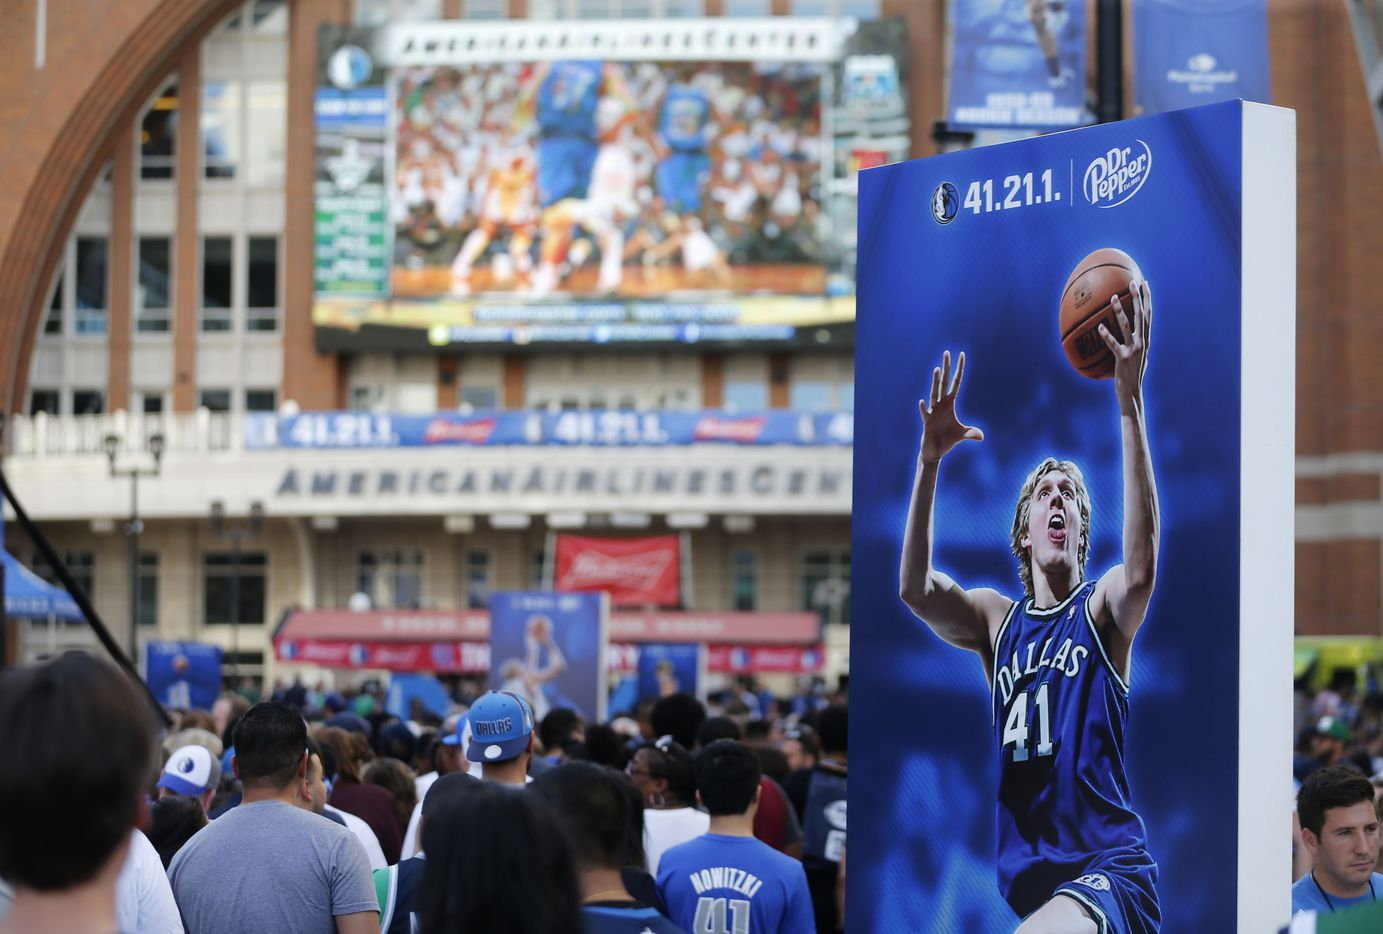 Fans line up to take a portrait at the last home game of the season between the Dallas Mavericks and Phoenix Suns at American Airlines Center in Dallas on Tuesday, April 9, 2019. (Vernon Bryant/The Dallas Morning News)